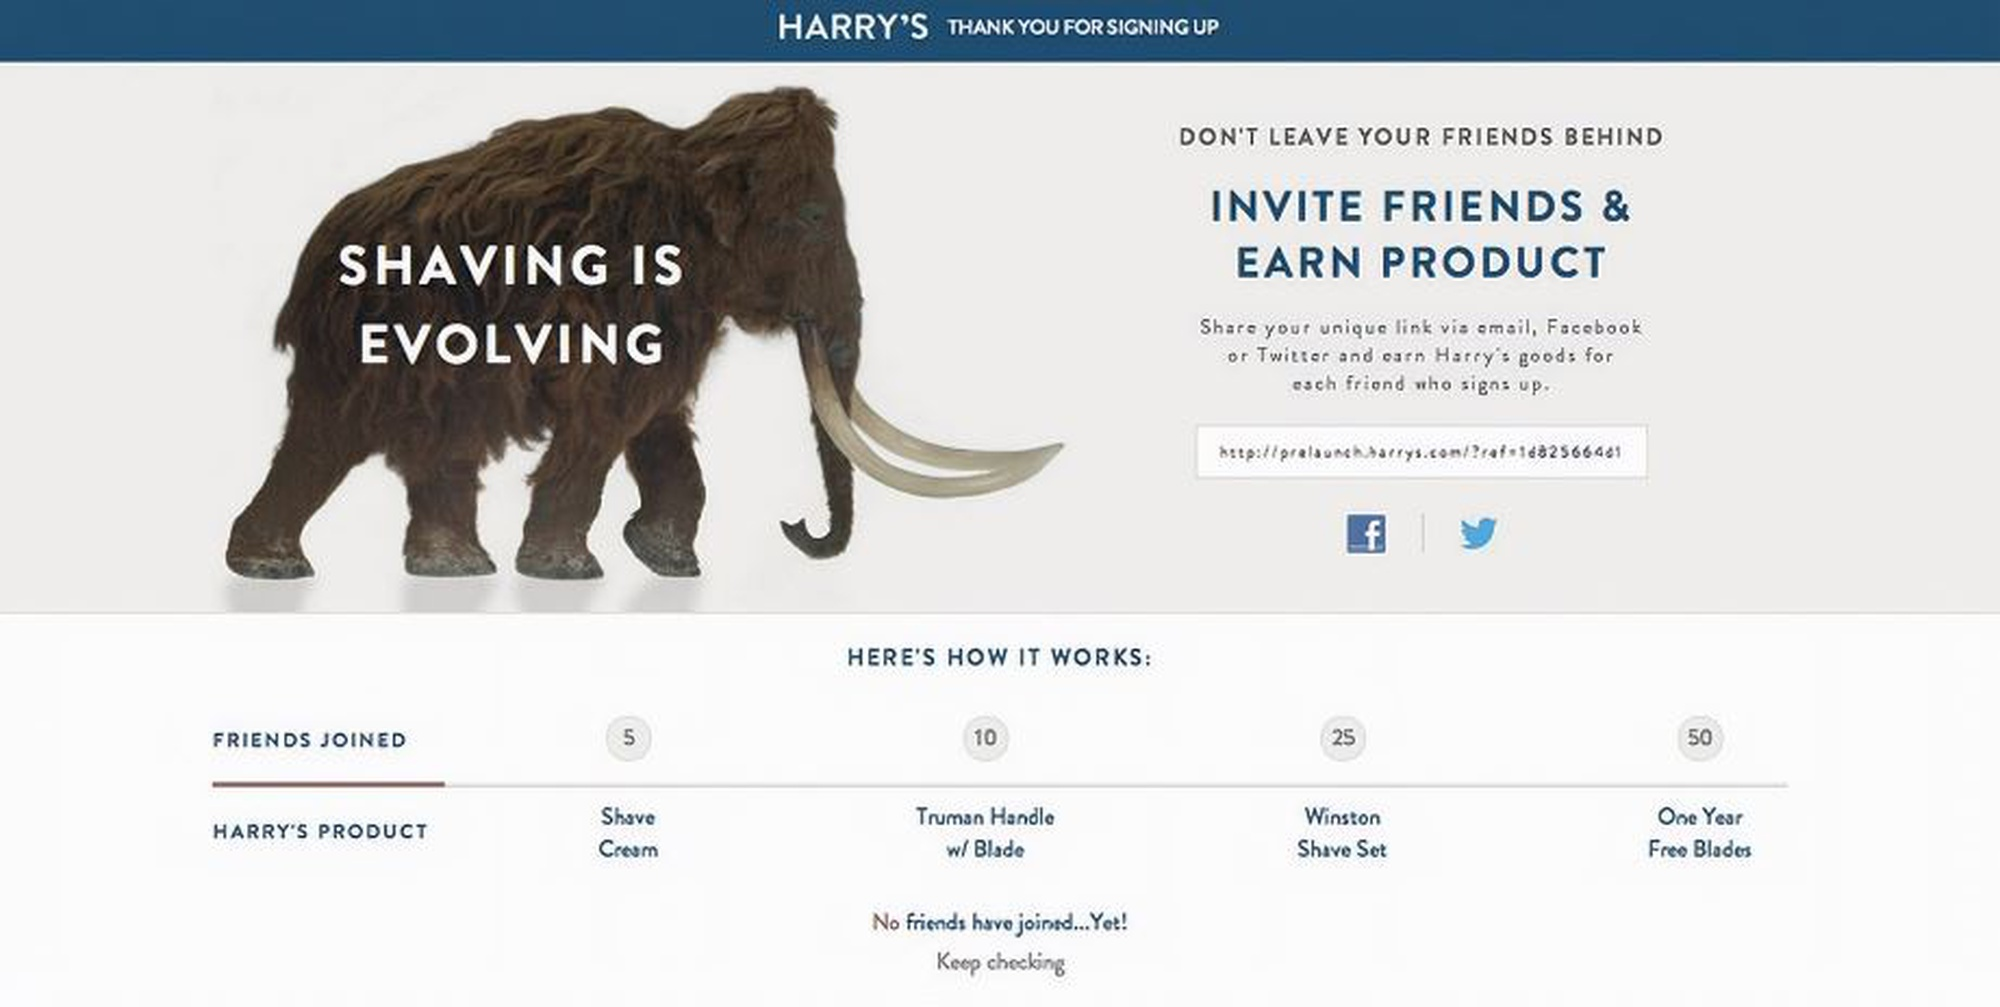 Harry's landing page